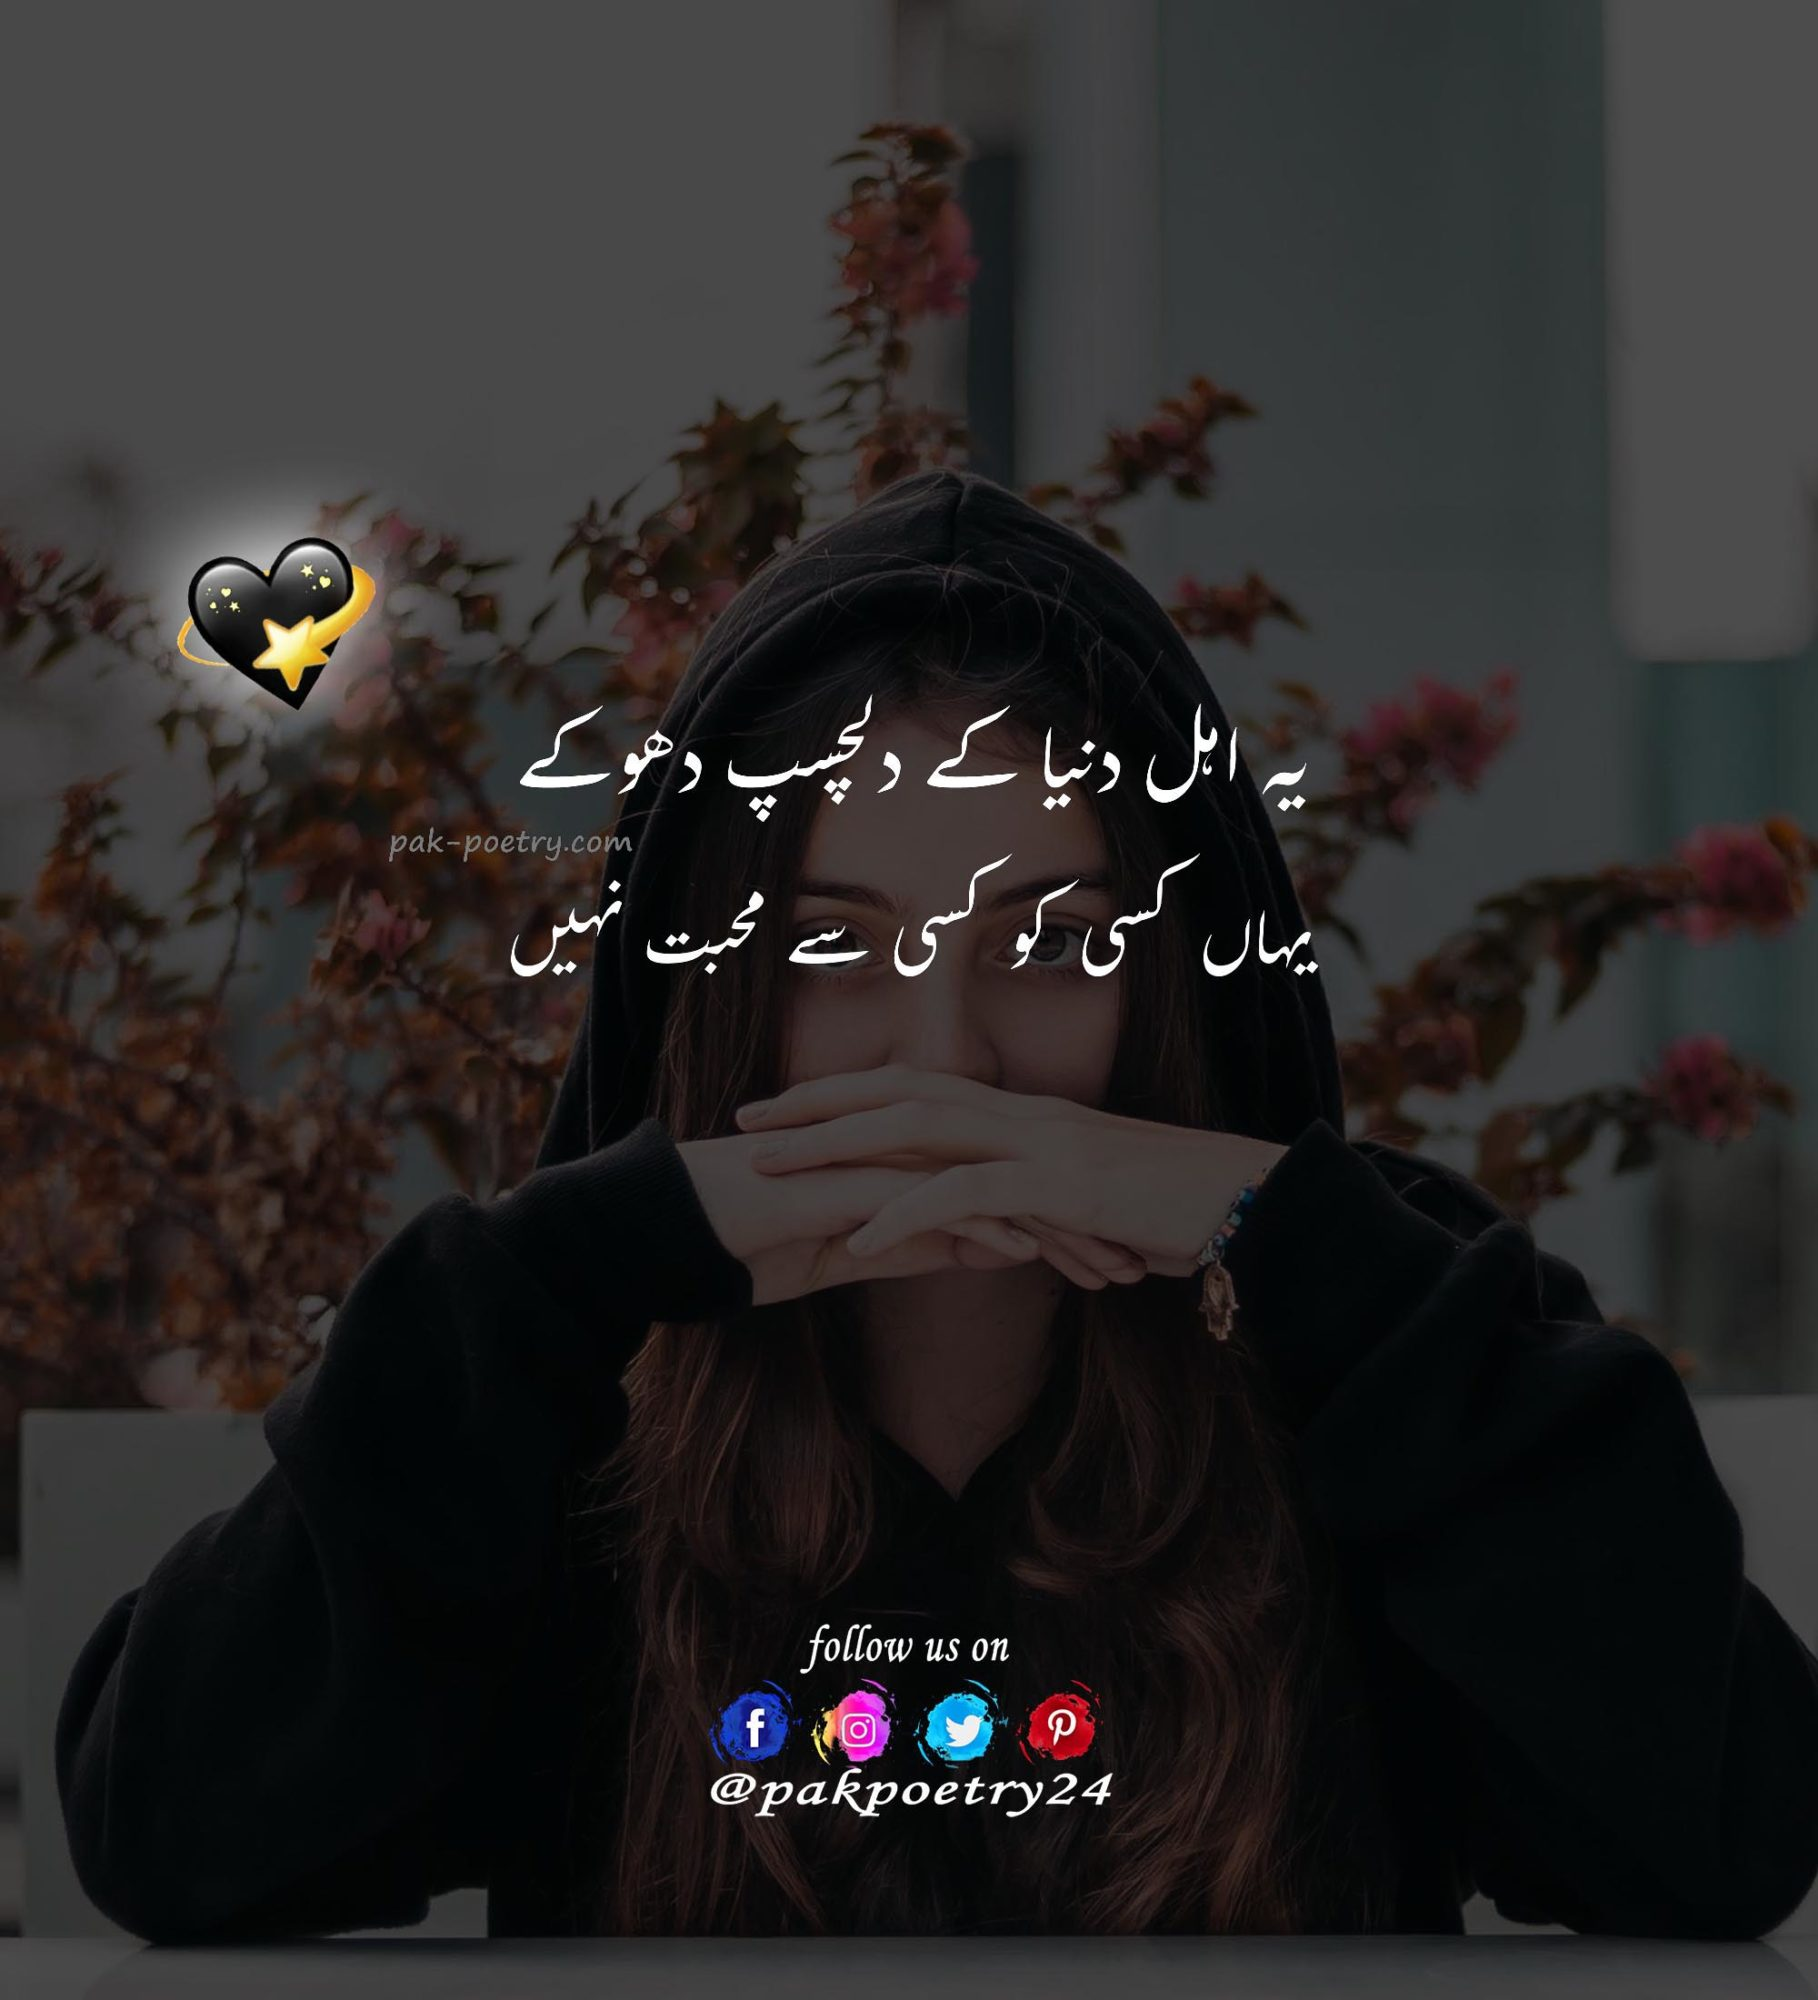 urdu poetry, poetry in urdu, poetry urdu, poetry, urdu shayari, potry in urdu, baat poetry, poetry.in.urdu, urdu poetry pic, poetry into urdu, urdu. poetry, porty urdu, urdu pietry, sad poetry, poetry, sad poetry in urdu, poetry sad, urdu sad poetry, sad poetry urdu, sad poetry pics, urdu poetry sad, poetry in urdu sad, poetry urdu sad, sad poetry images, sad.poetry, sad poetry pic, sad potery, sad potry, sad peotry, sad poetry image, sadpoetry,